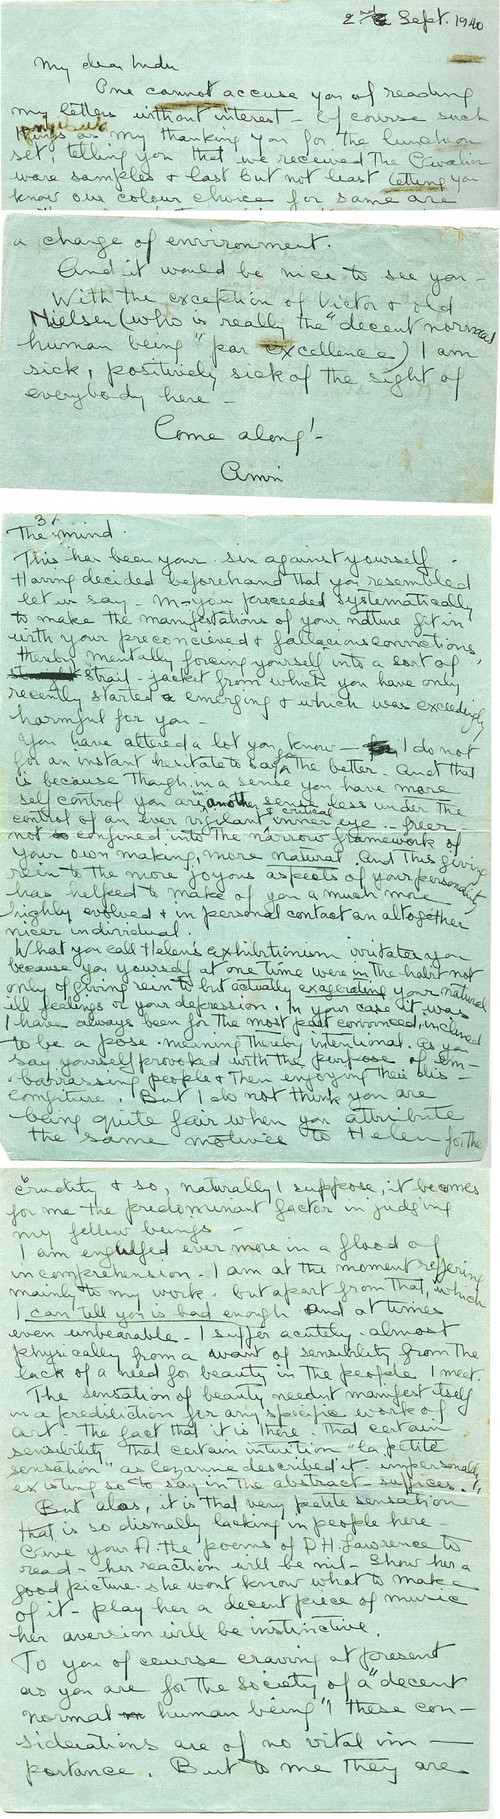 Image: Letter from Amrita Sher-Gil.